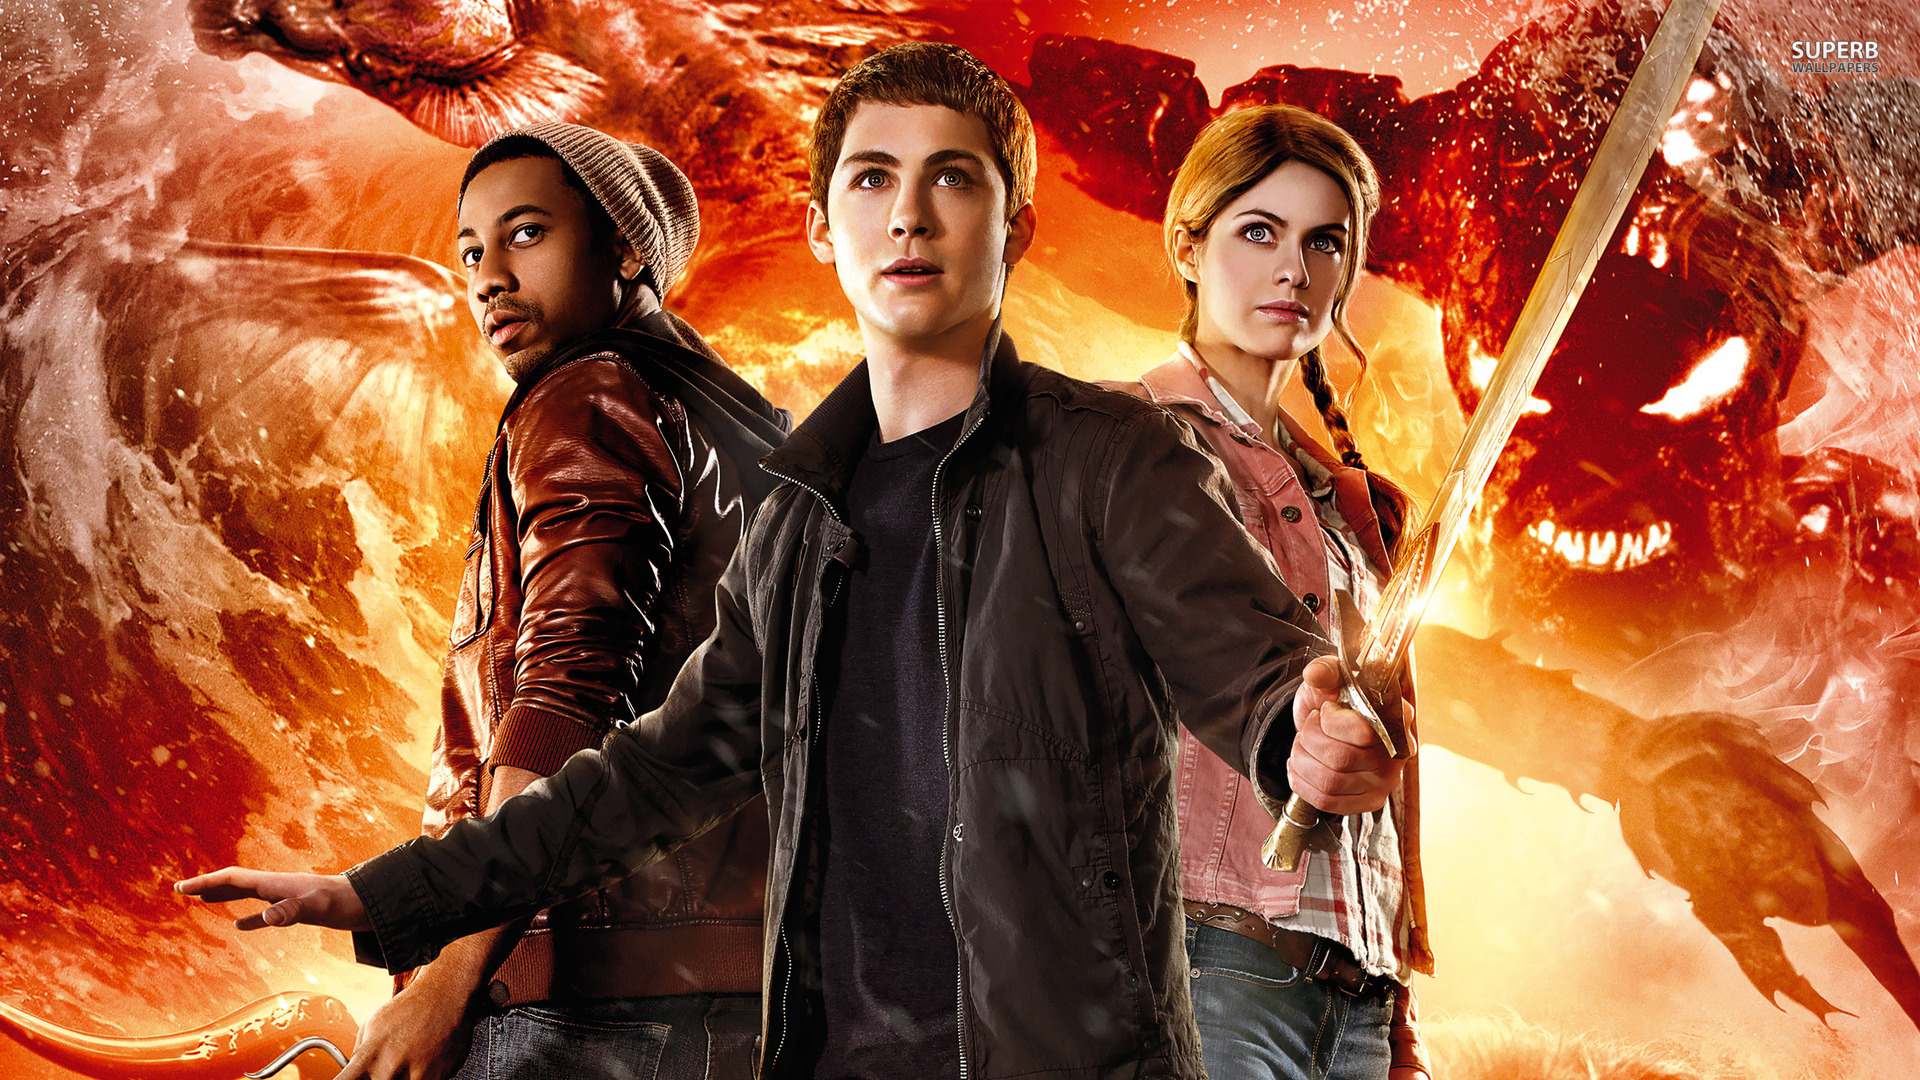 Details about the cast of Percy Jackson and the Olympians | Percy ...